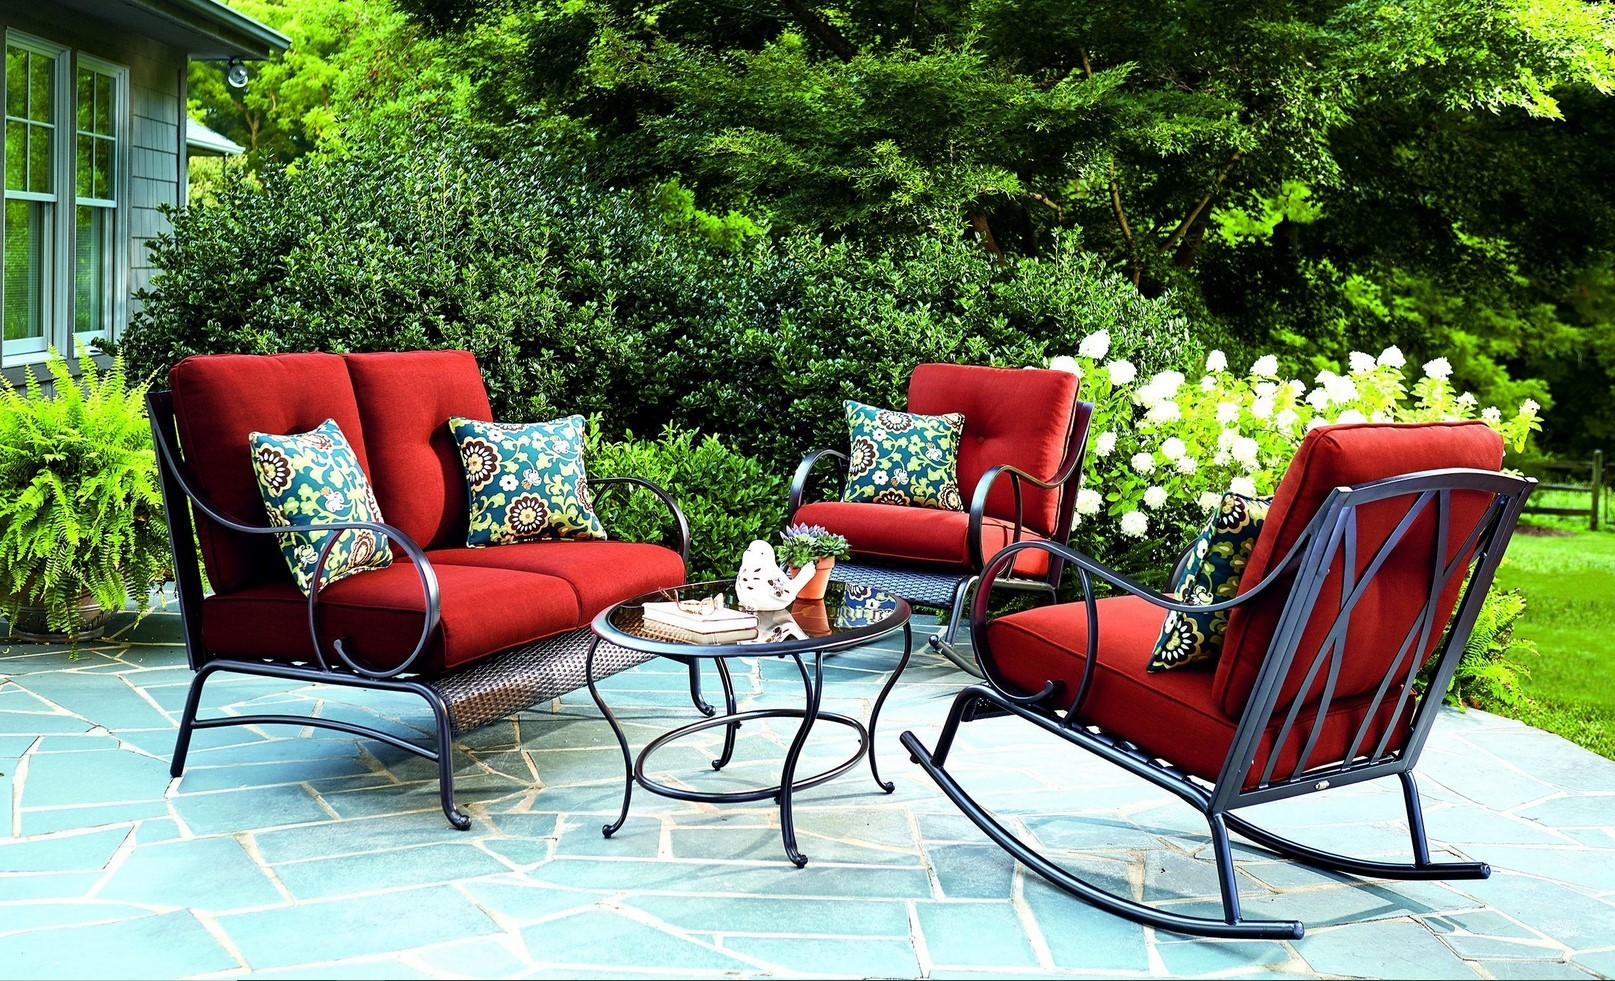 Outdoor Furniture Store Near Me | Top Home Information